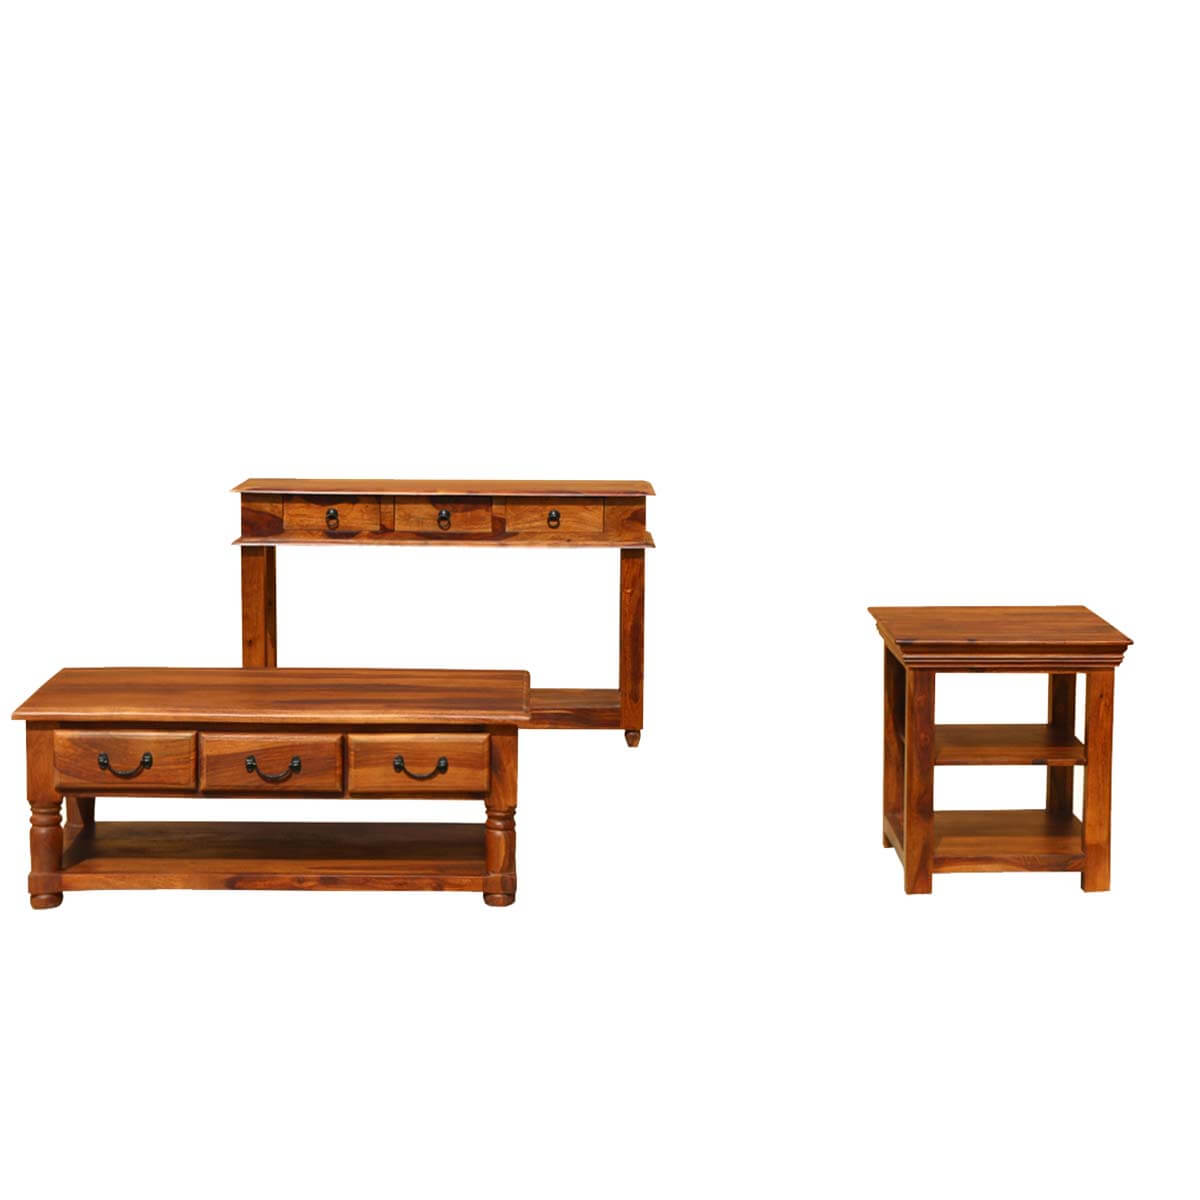 Early American Solid Wood Console Coffee Accent Table